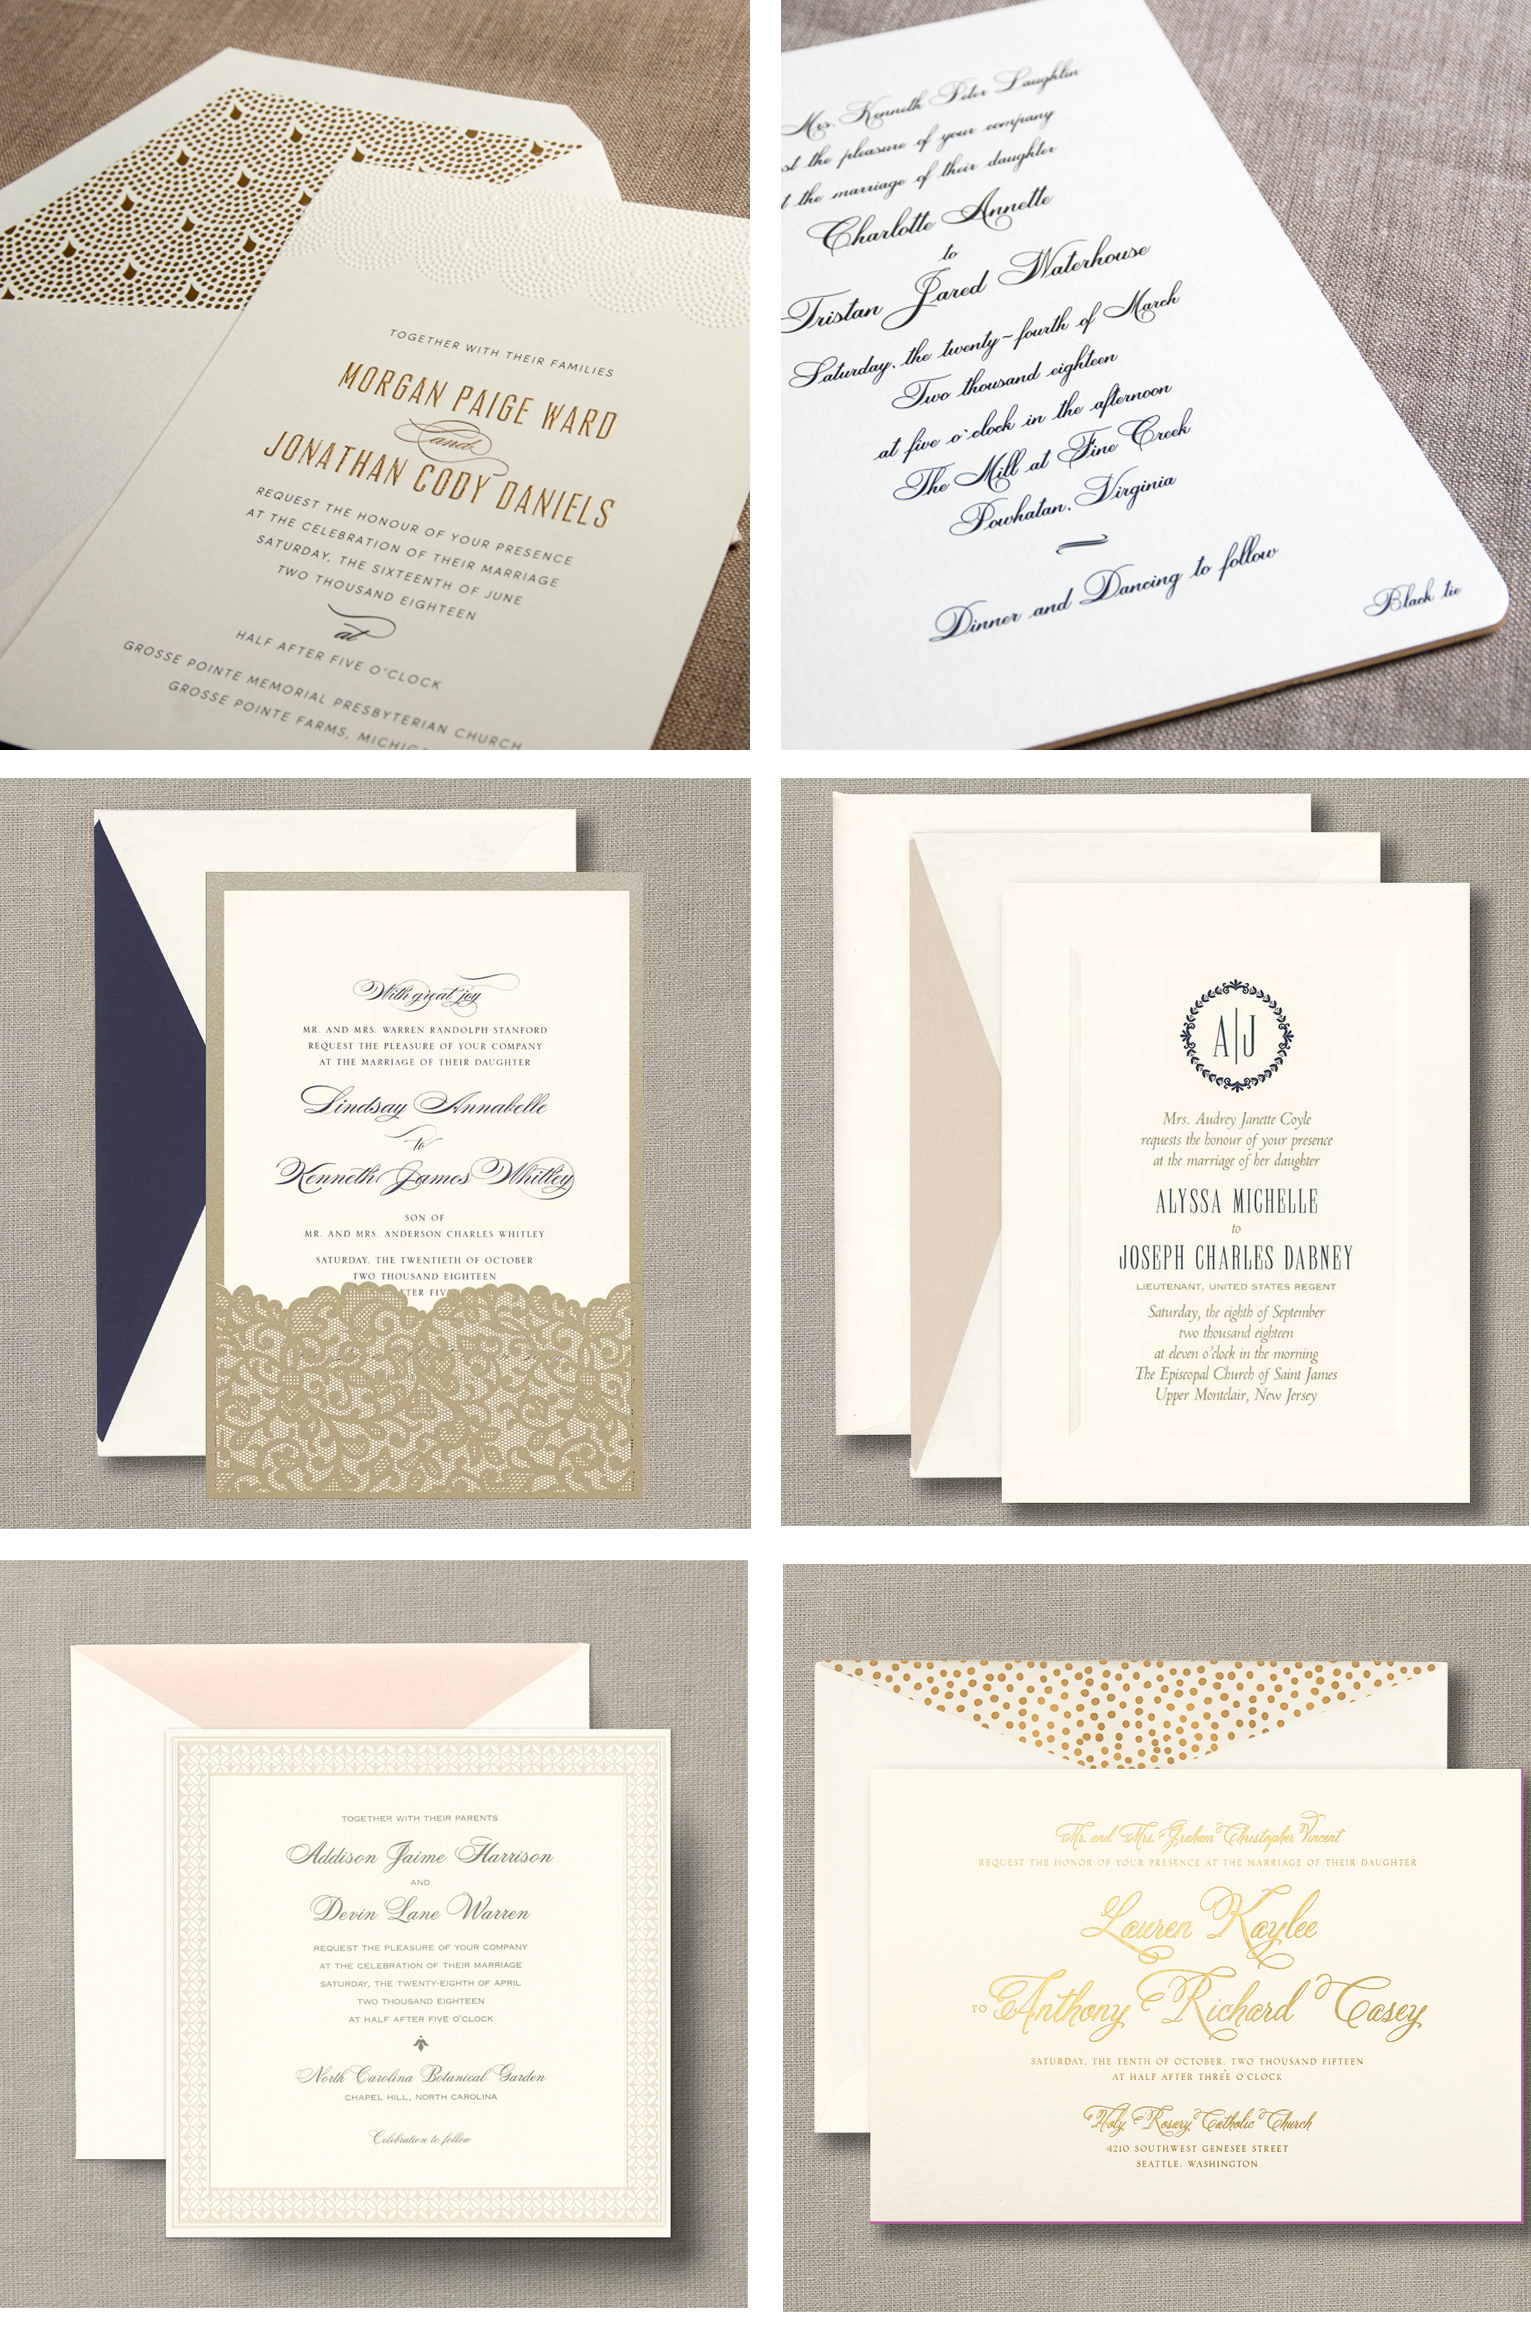 25 Free William Arthur Wedding Invitations Sweet Paper